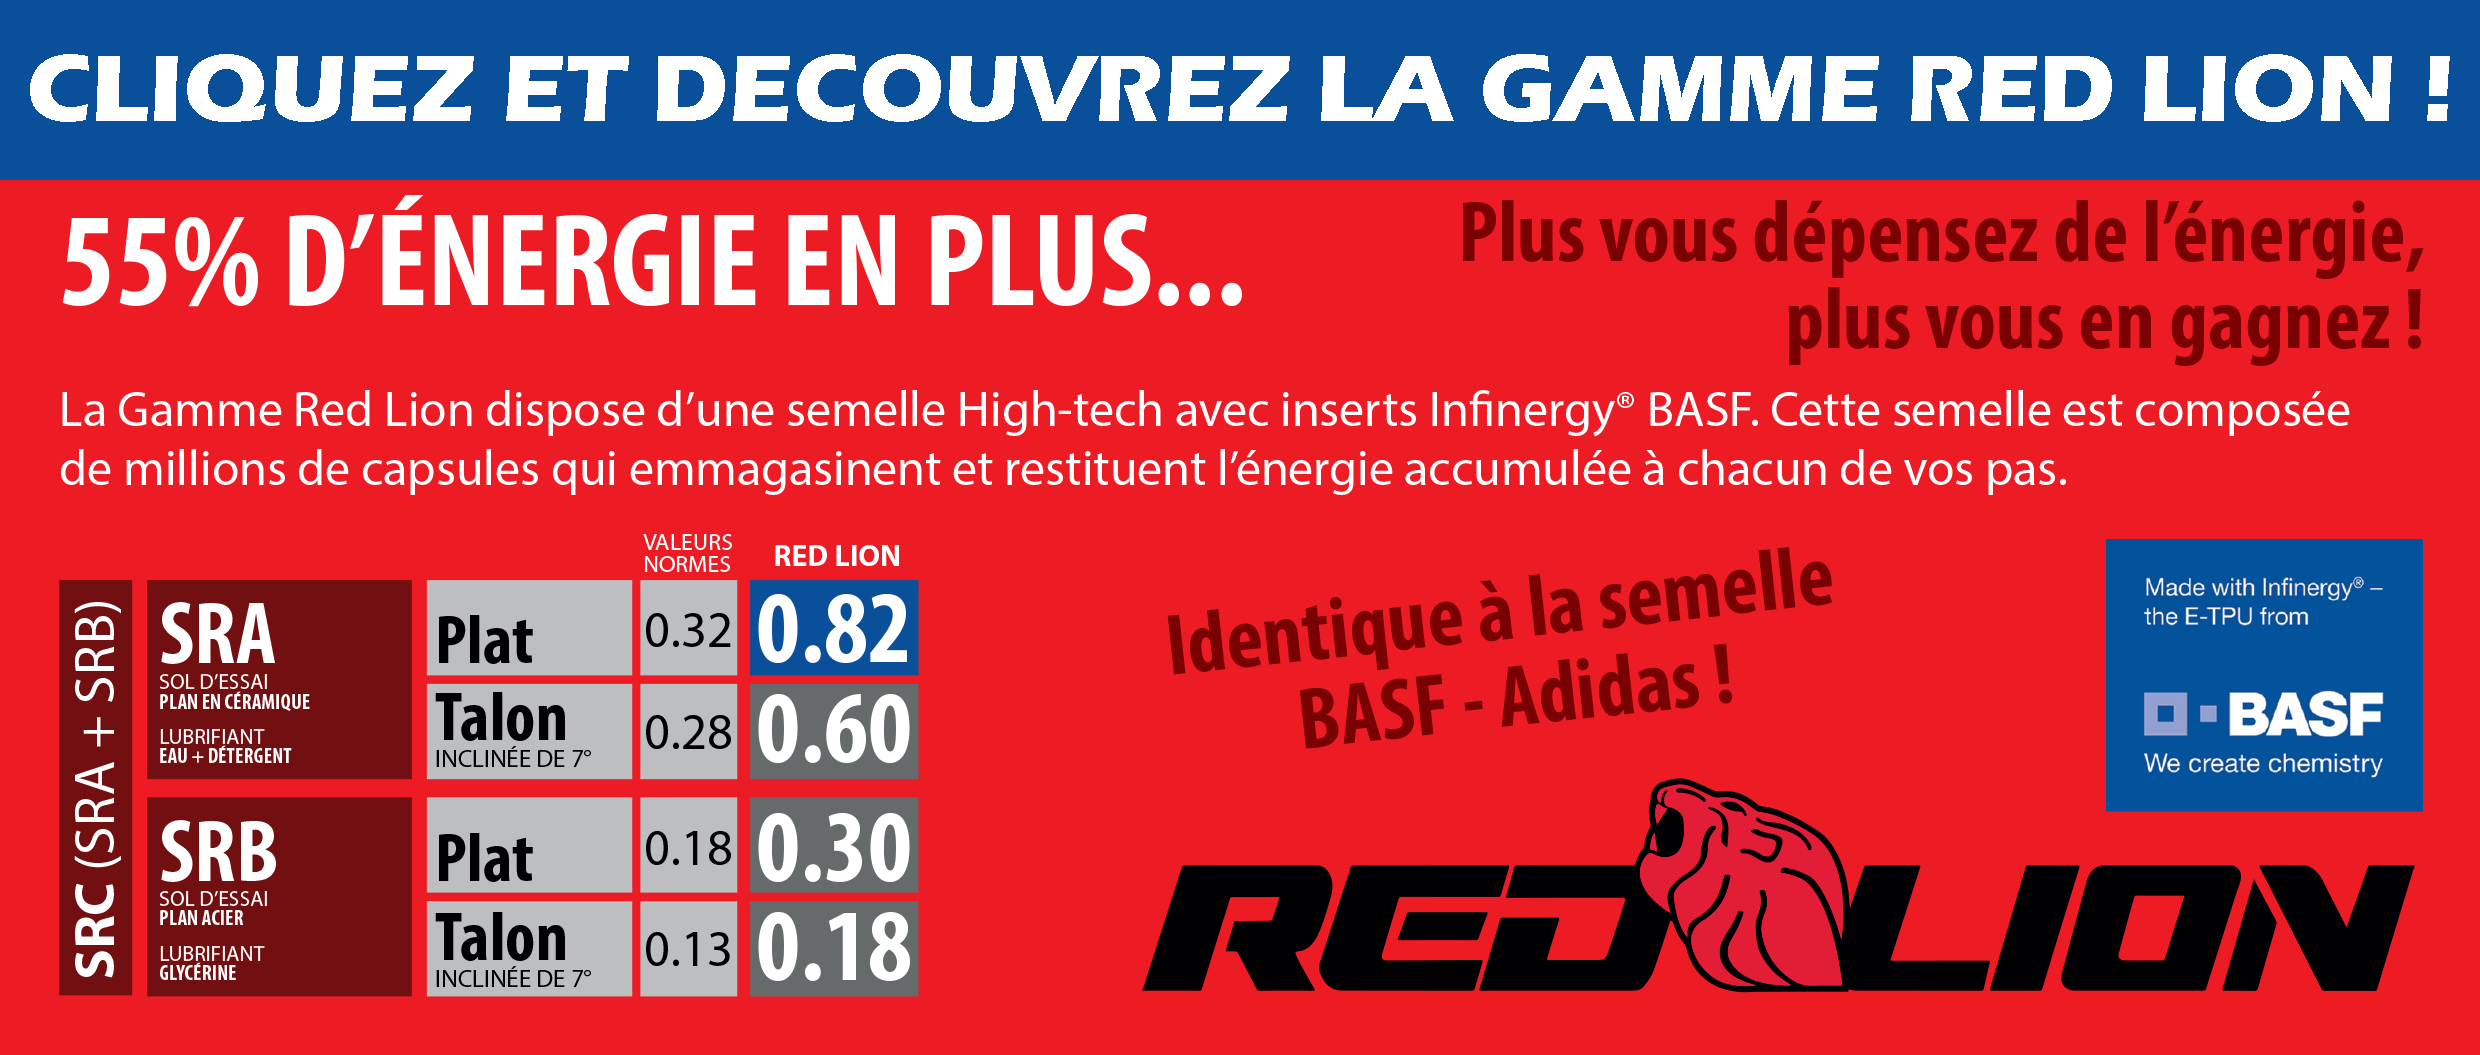 RED LION - CHAUSSURES DE SECURITE